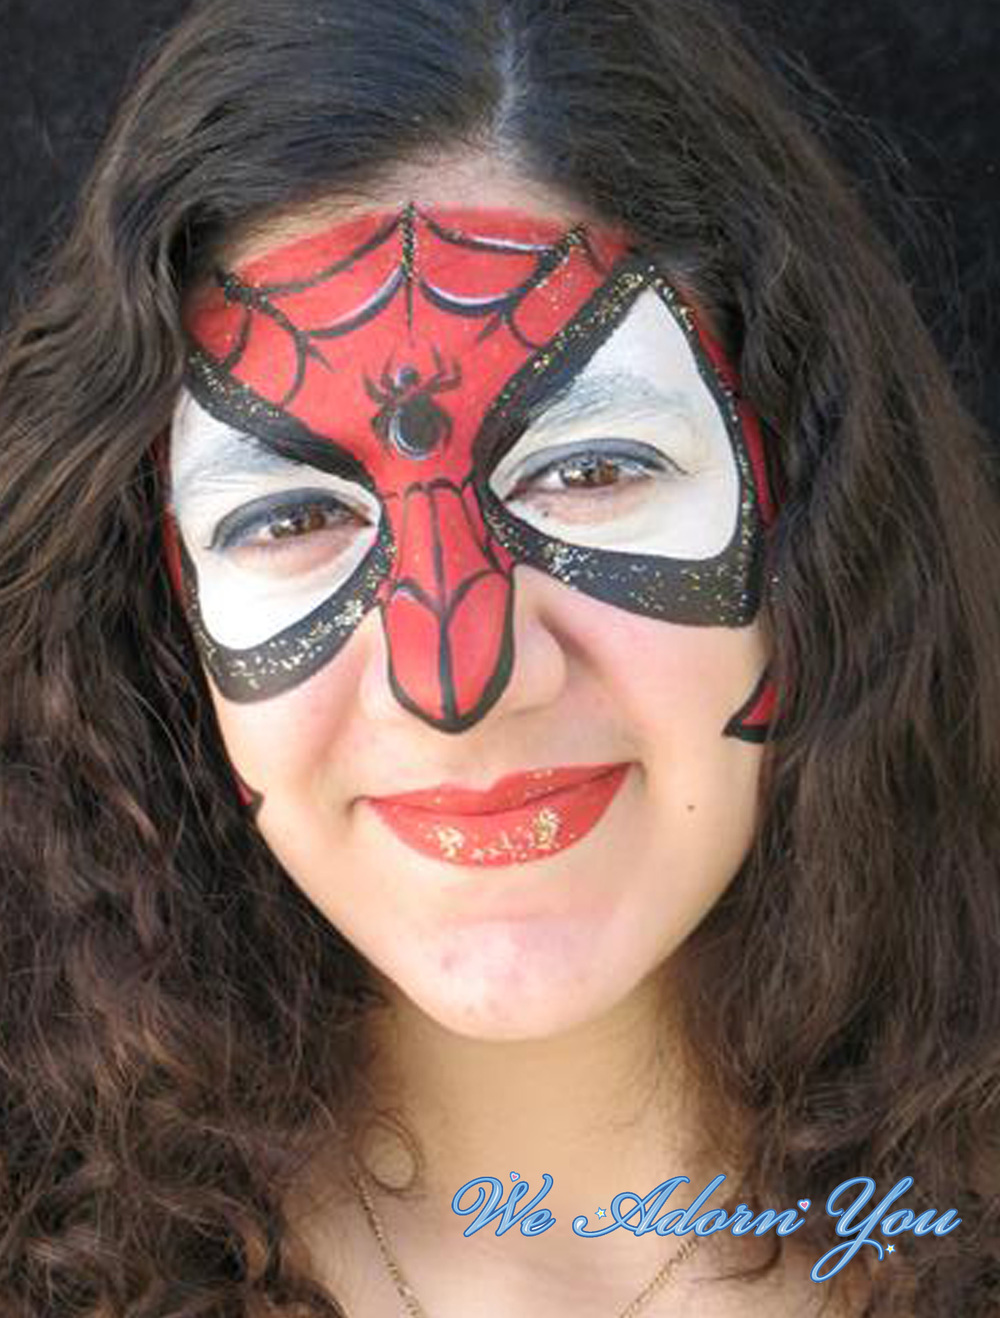 Face Painting SpiderGirl- We Adorn You.jpg